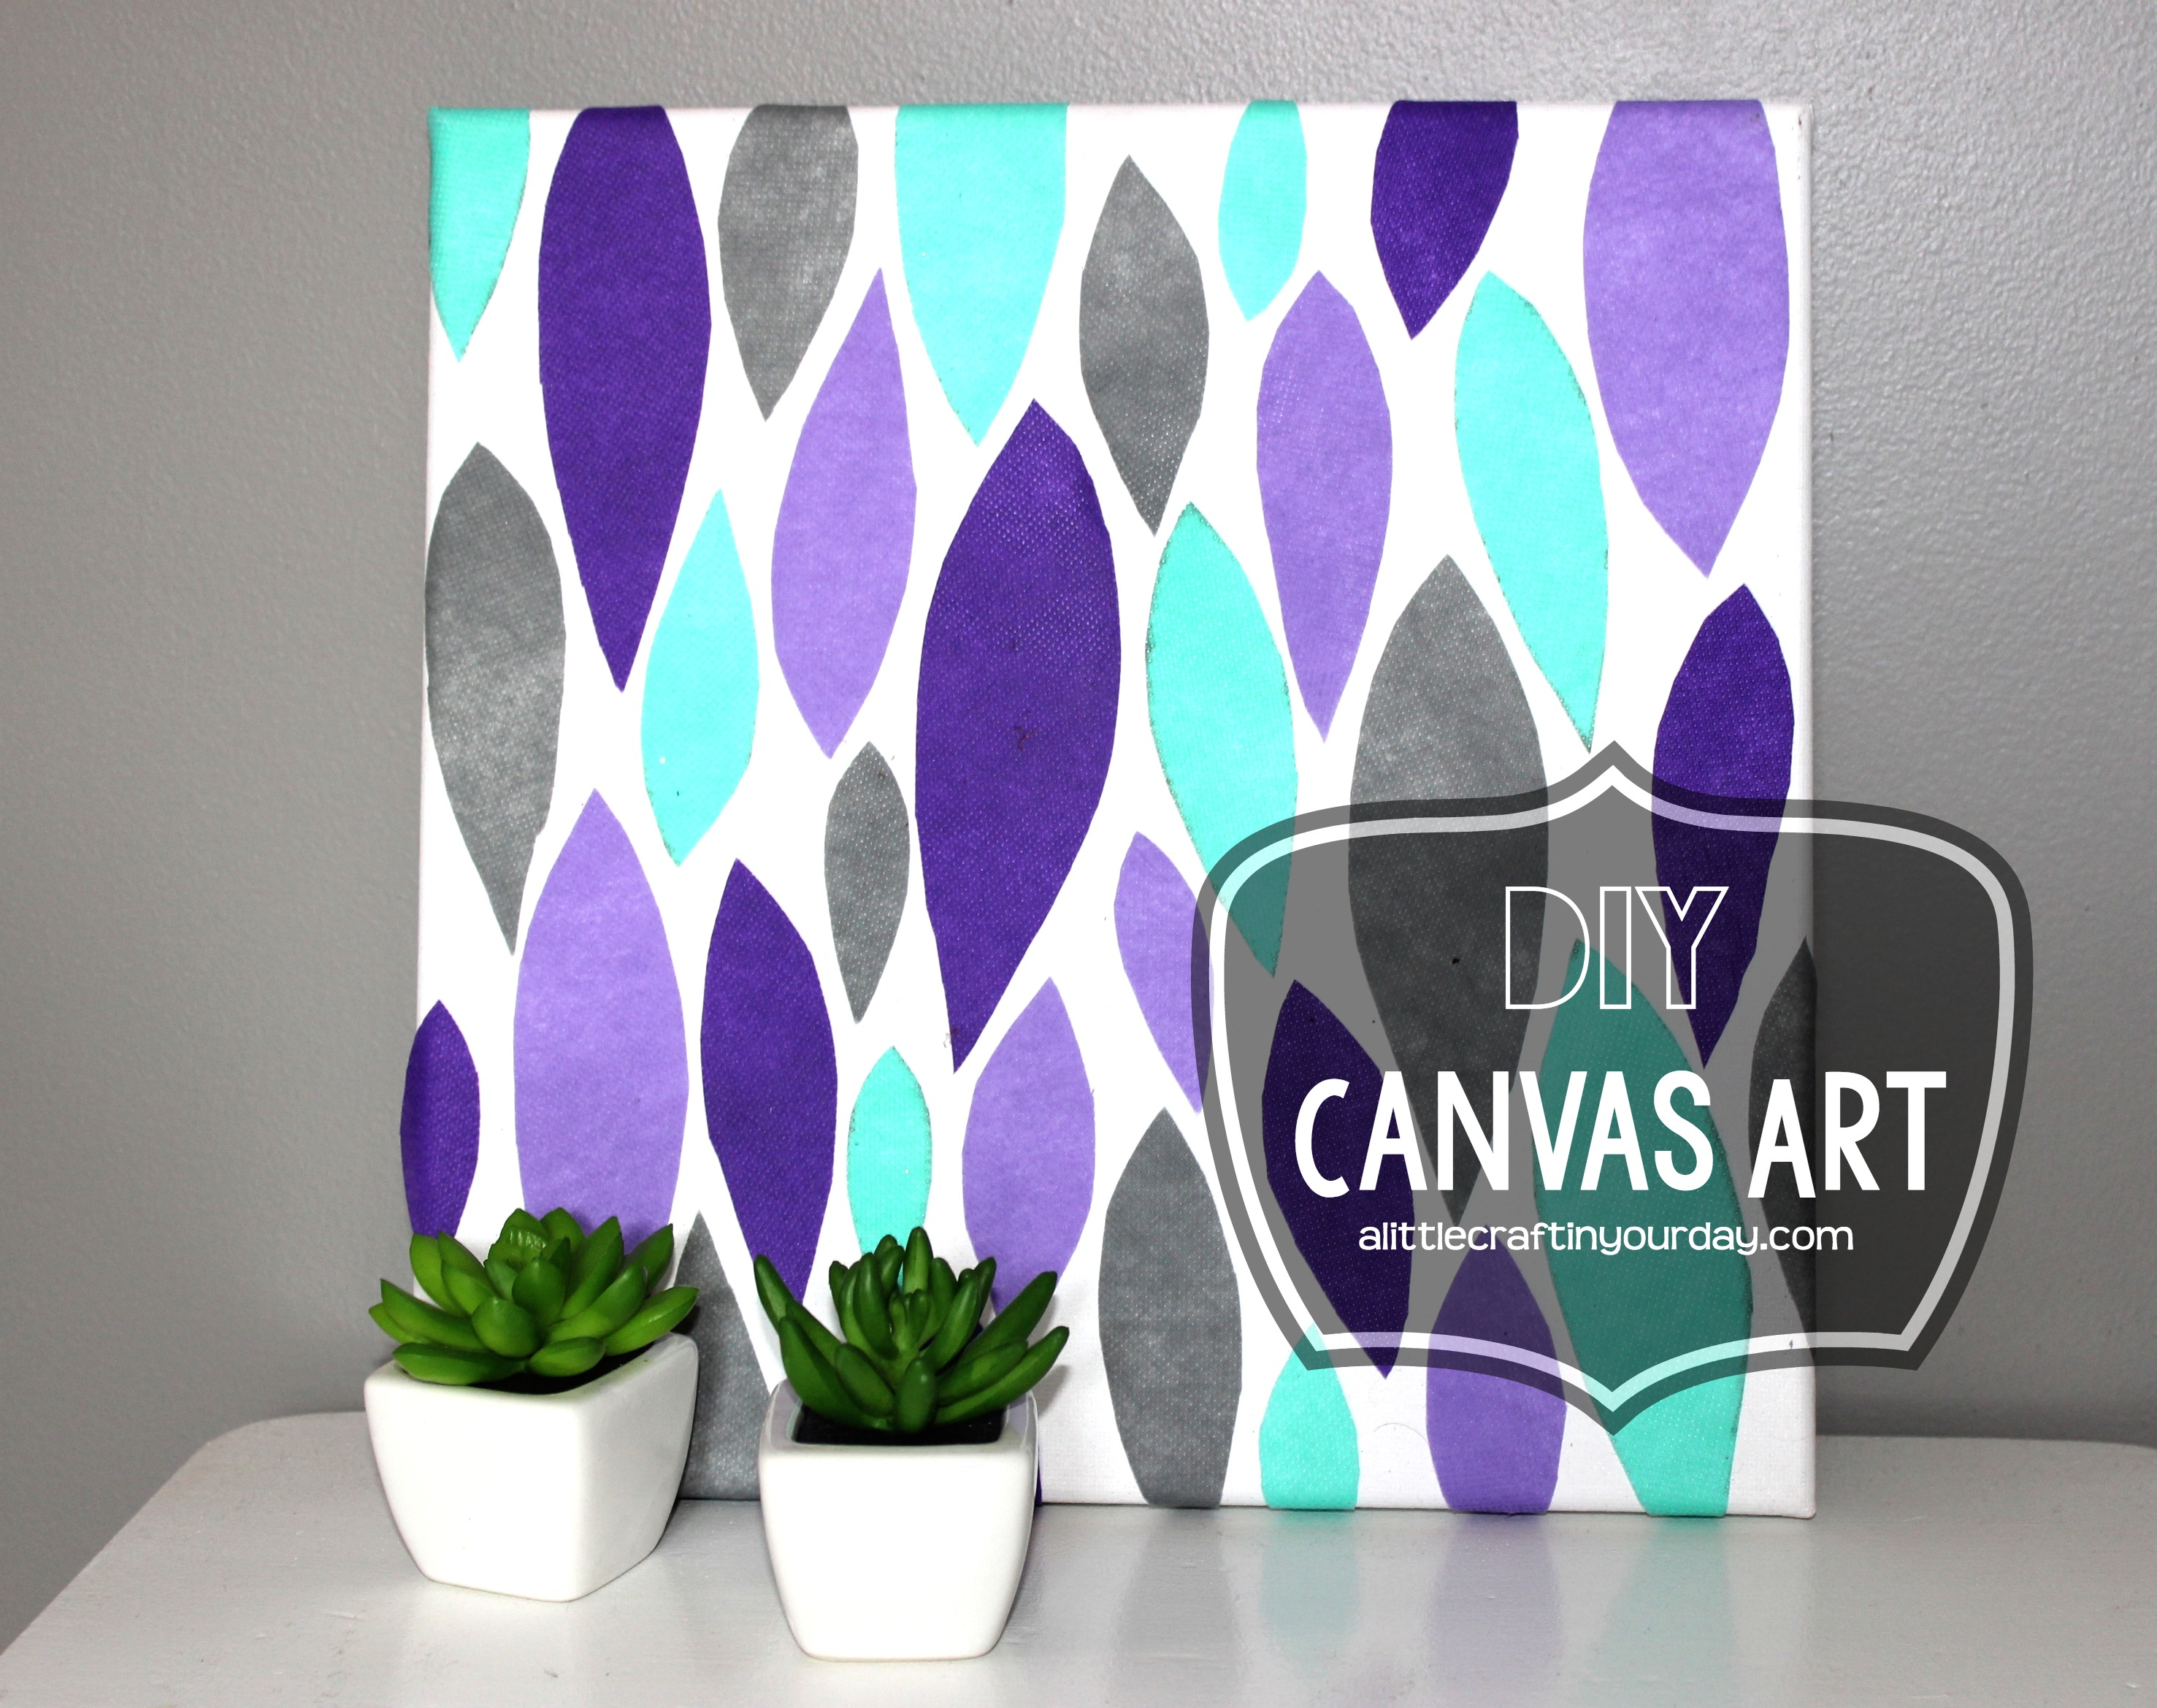 Diy canvas art a little craft in your day for Diy art projects canvas